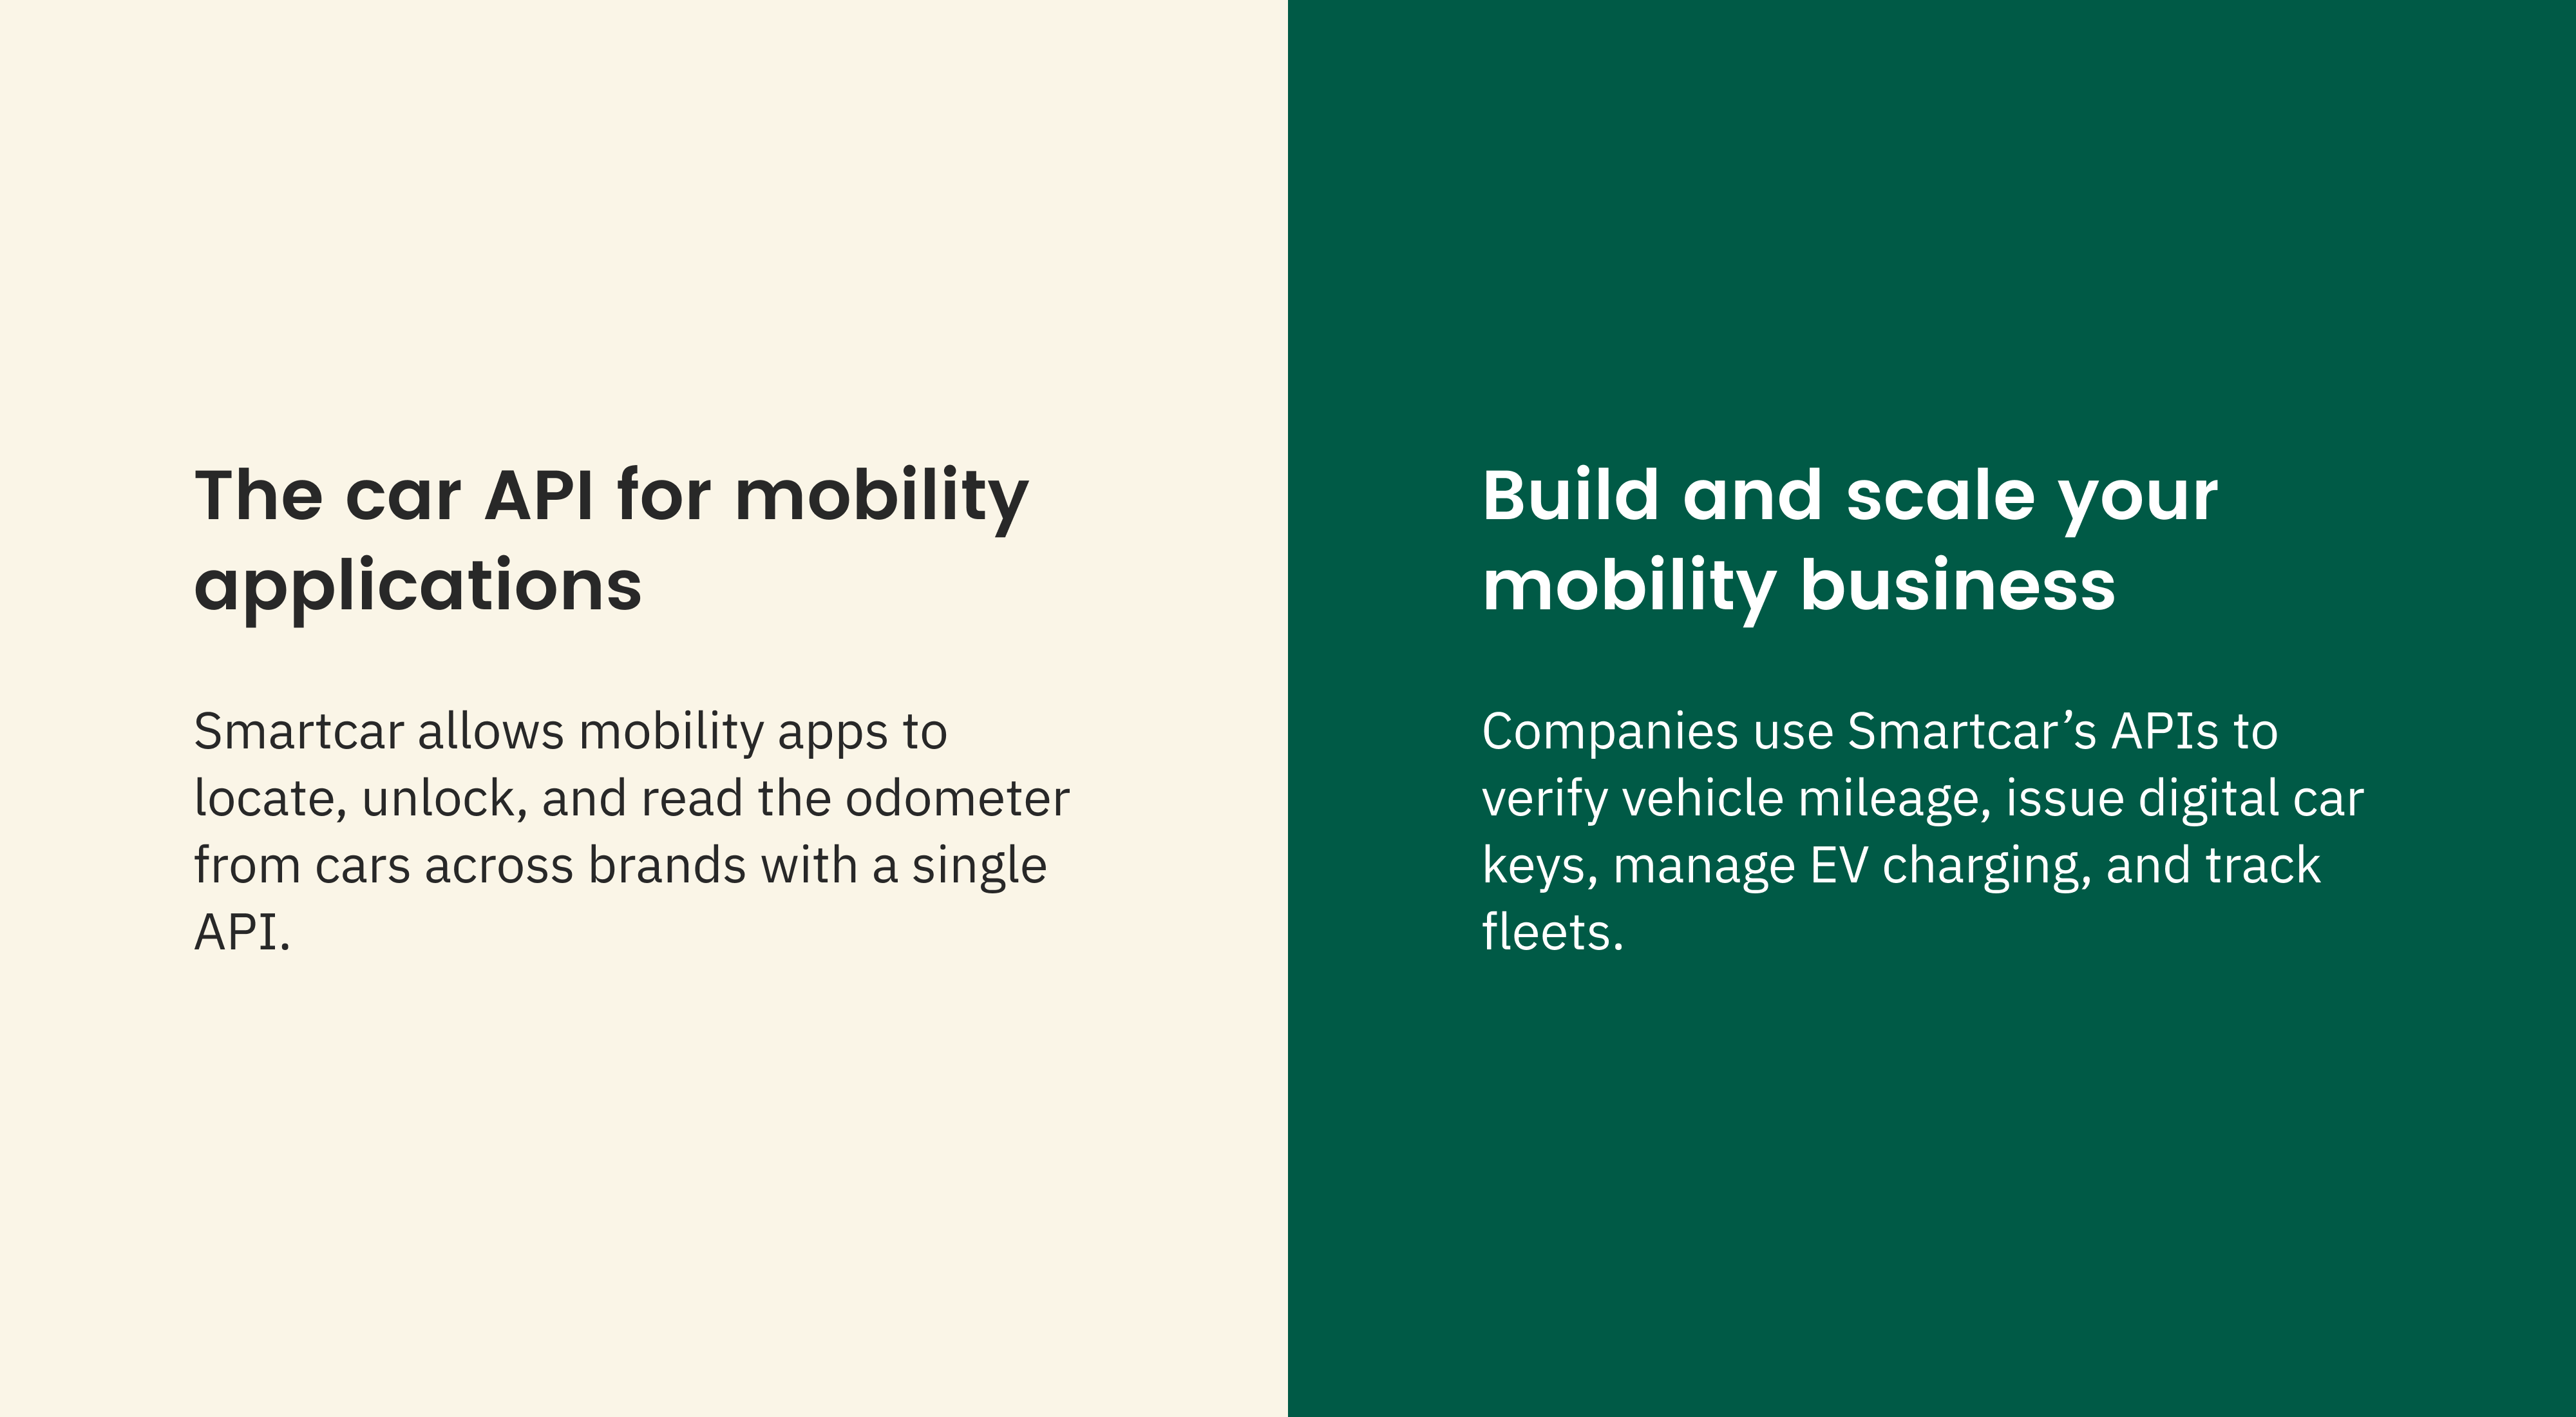 Left side: The car API for mobility applications. Smartcar allows mobility apps to locate, unlock, and read the odometer from cars across brands with a single API. Right side: Build and scale your mobility business. Companies use Smartcar's APIs to verify vehicle mileage, issue digital car keys, manage EV charging, and track fleets.